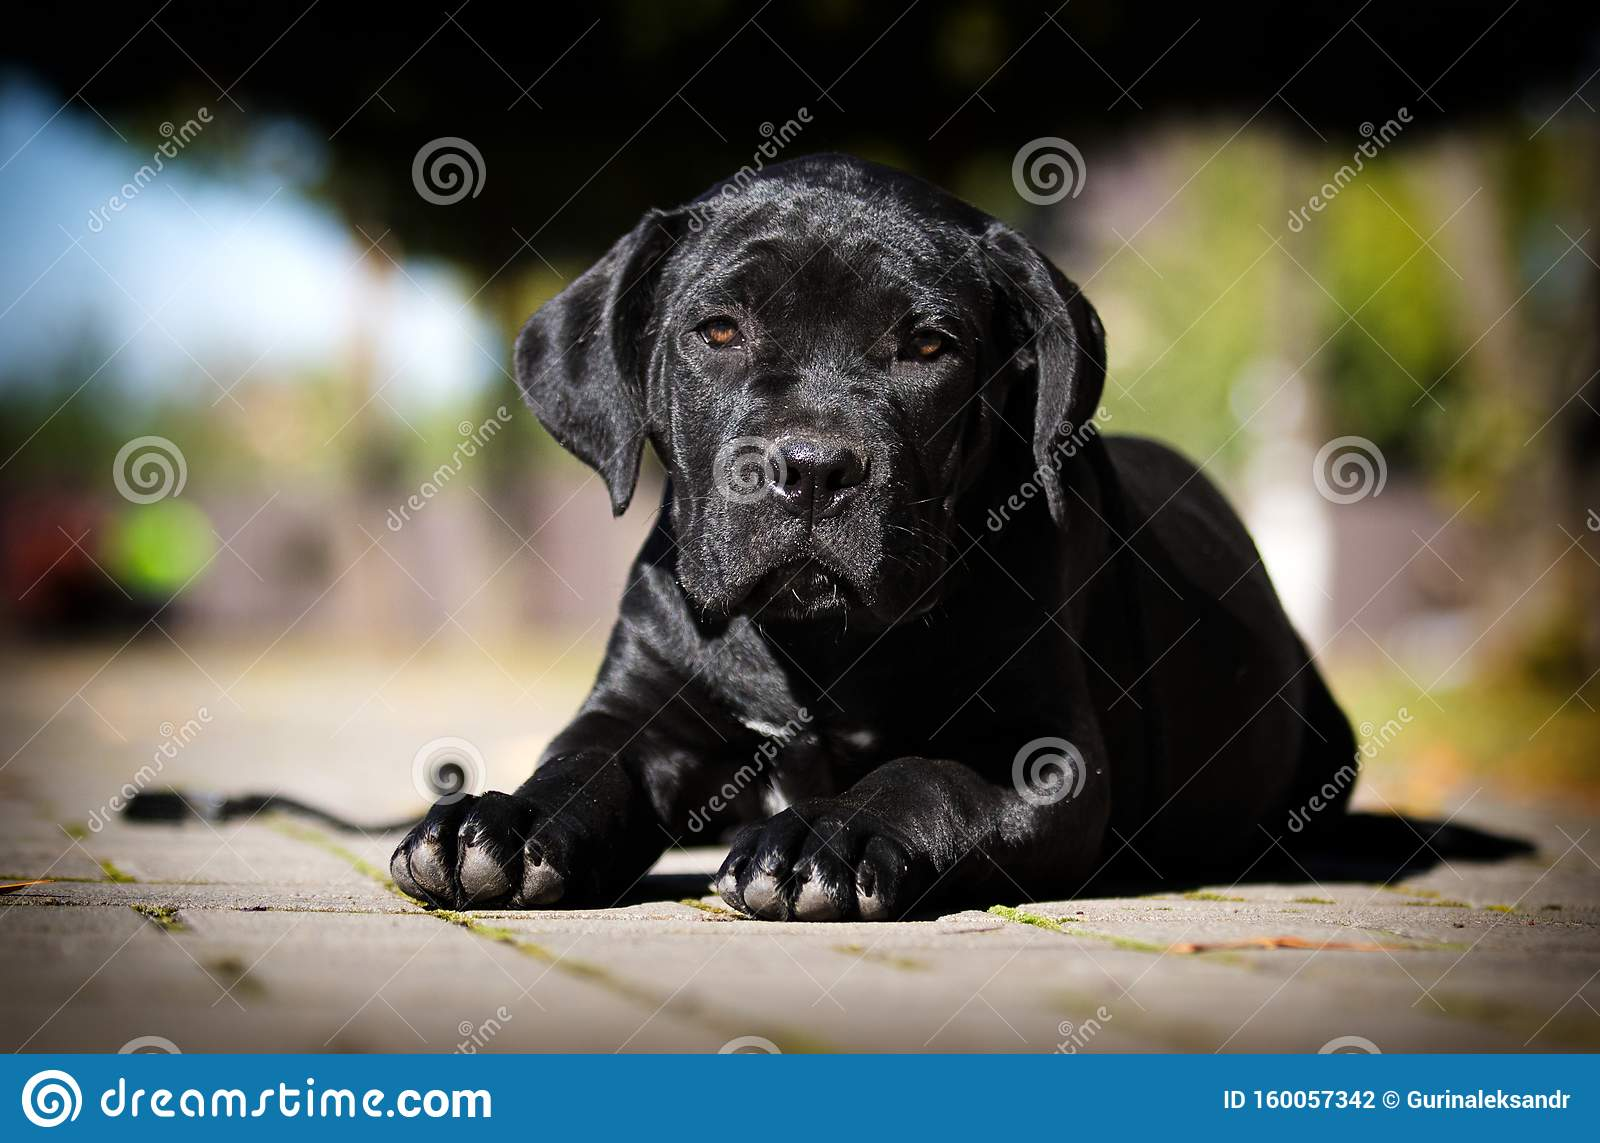 Dog Breed Cane Corso Stock Photo Image Of Pedigree 160057342